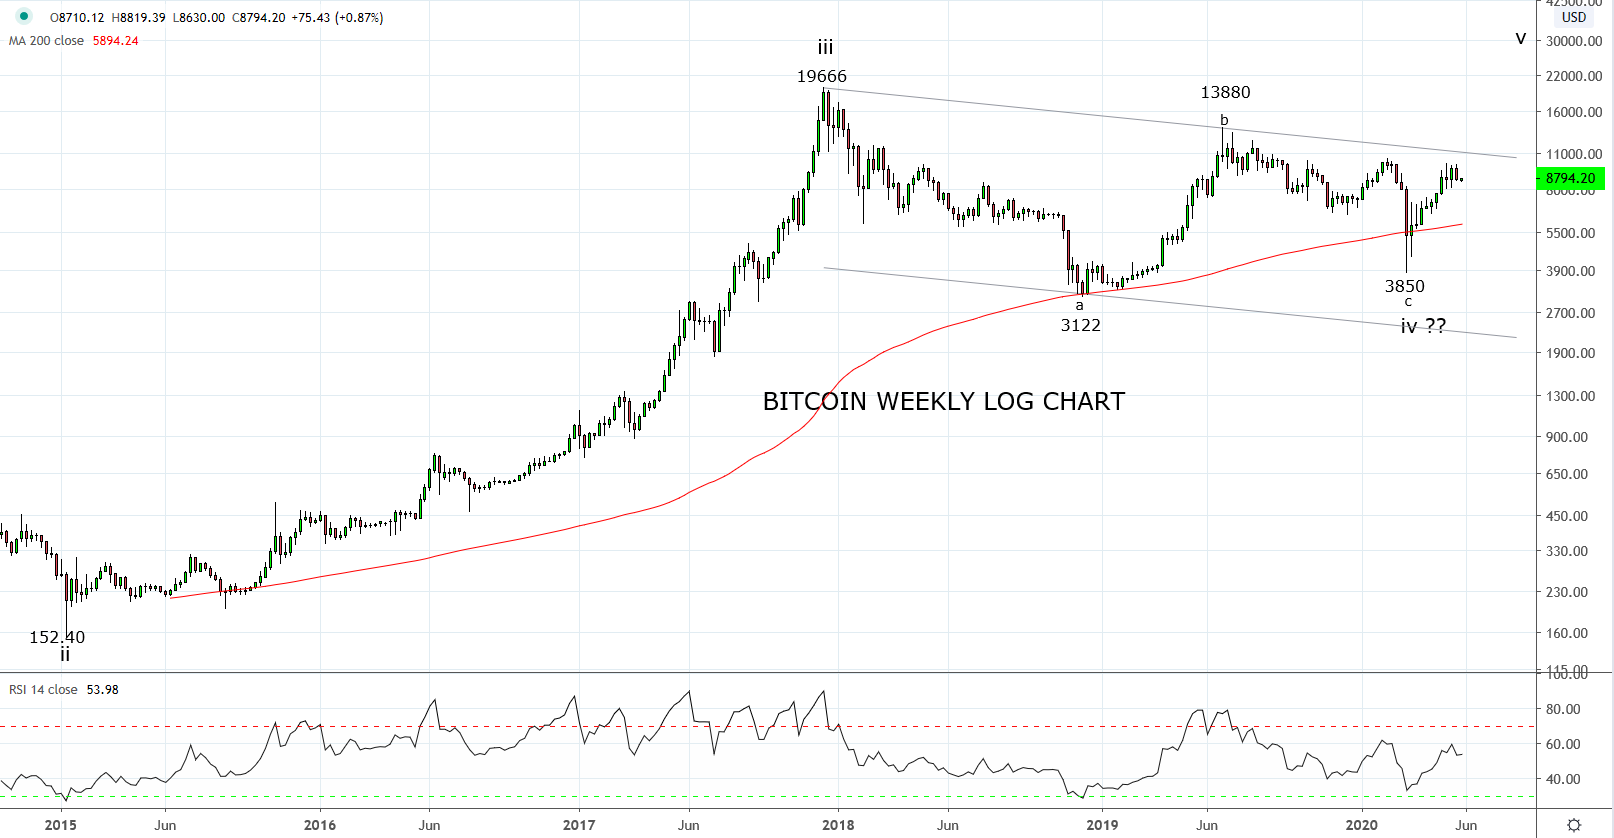 Bitcoin finds stability in May